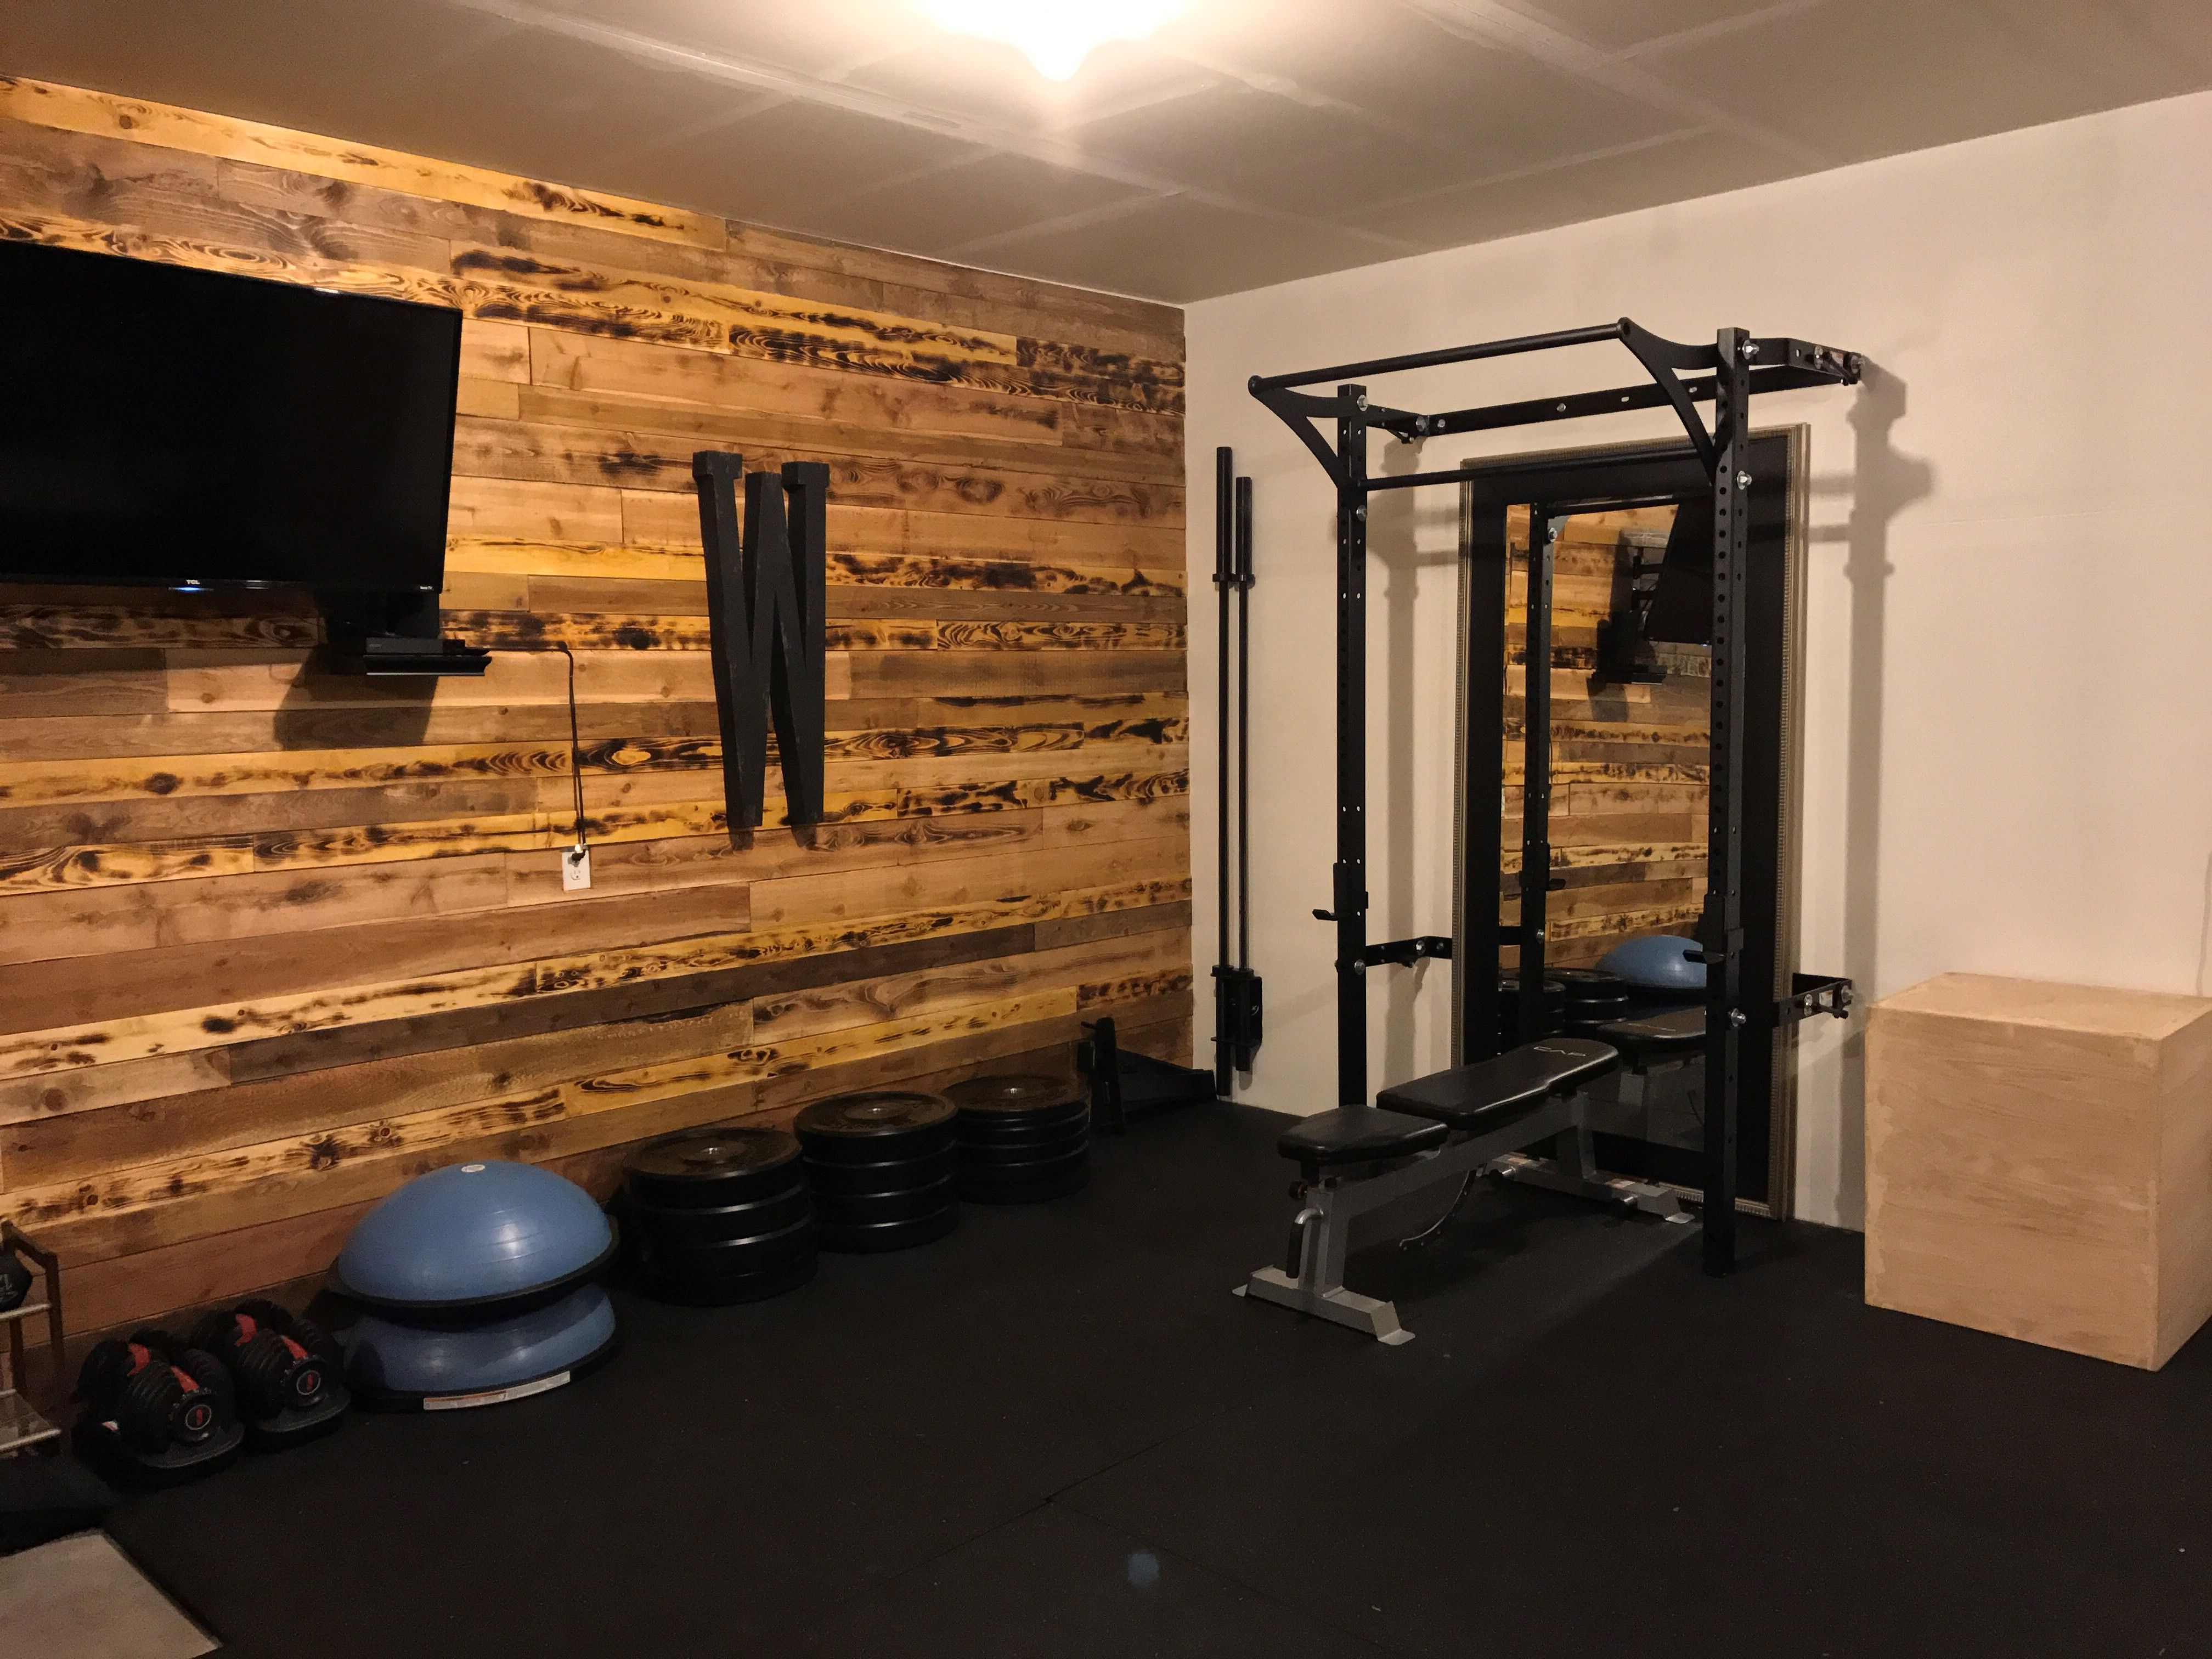 Diy wood wall to shape out the home gym home gym ideas home